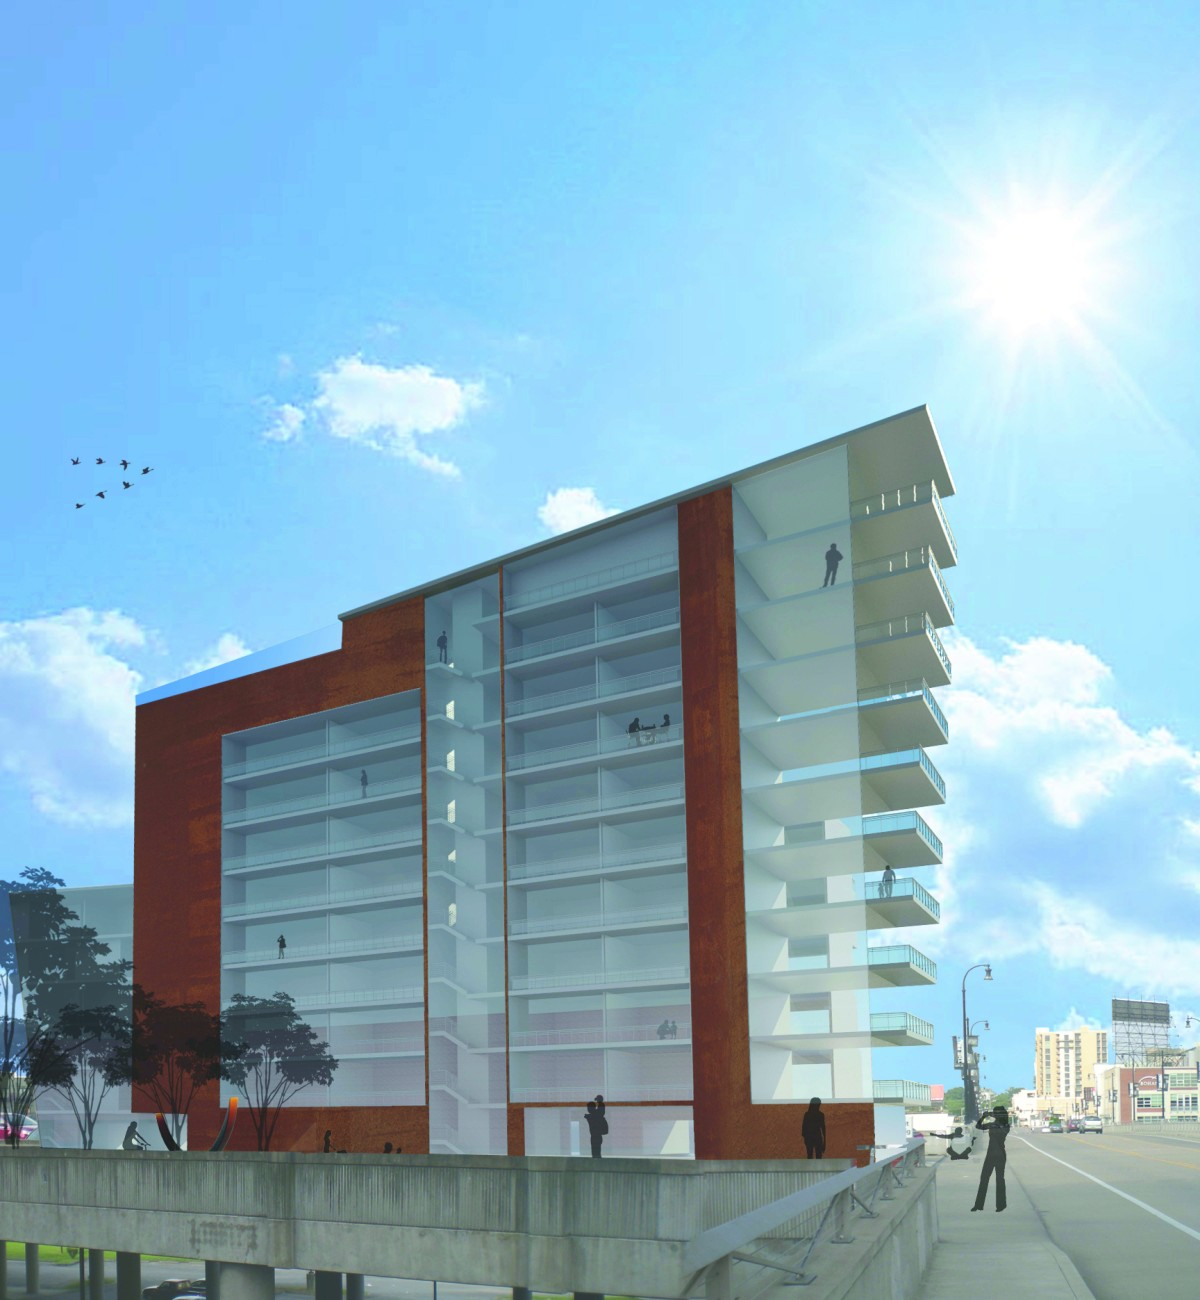 Micro-Apartments Could Be Key to Affordable, Healthy Downtown Nashville